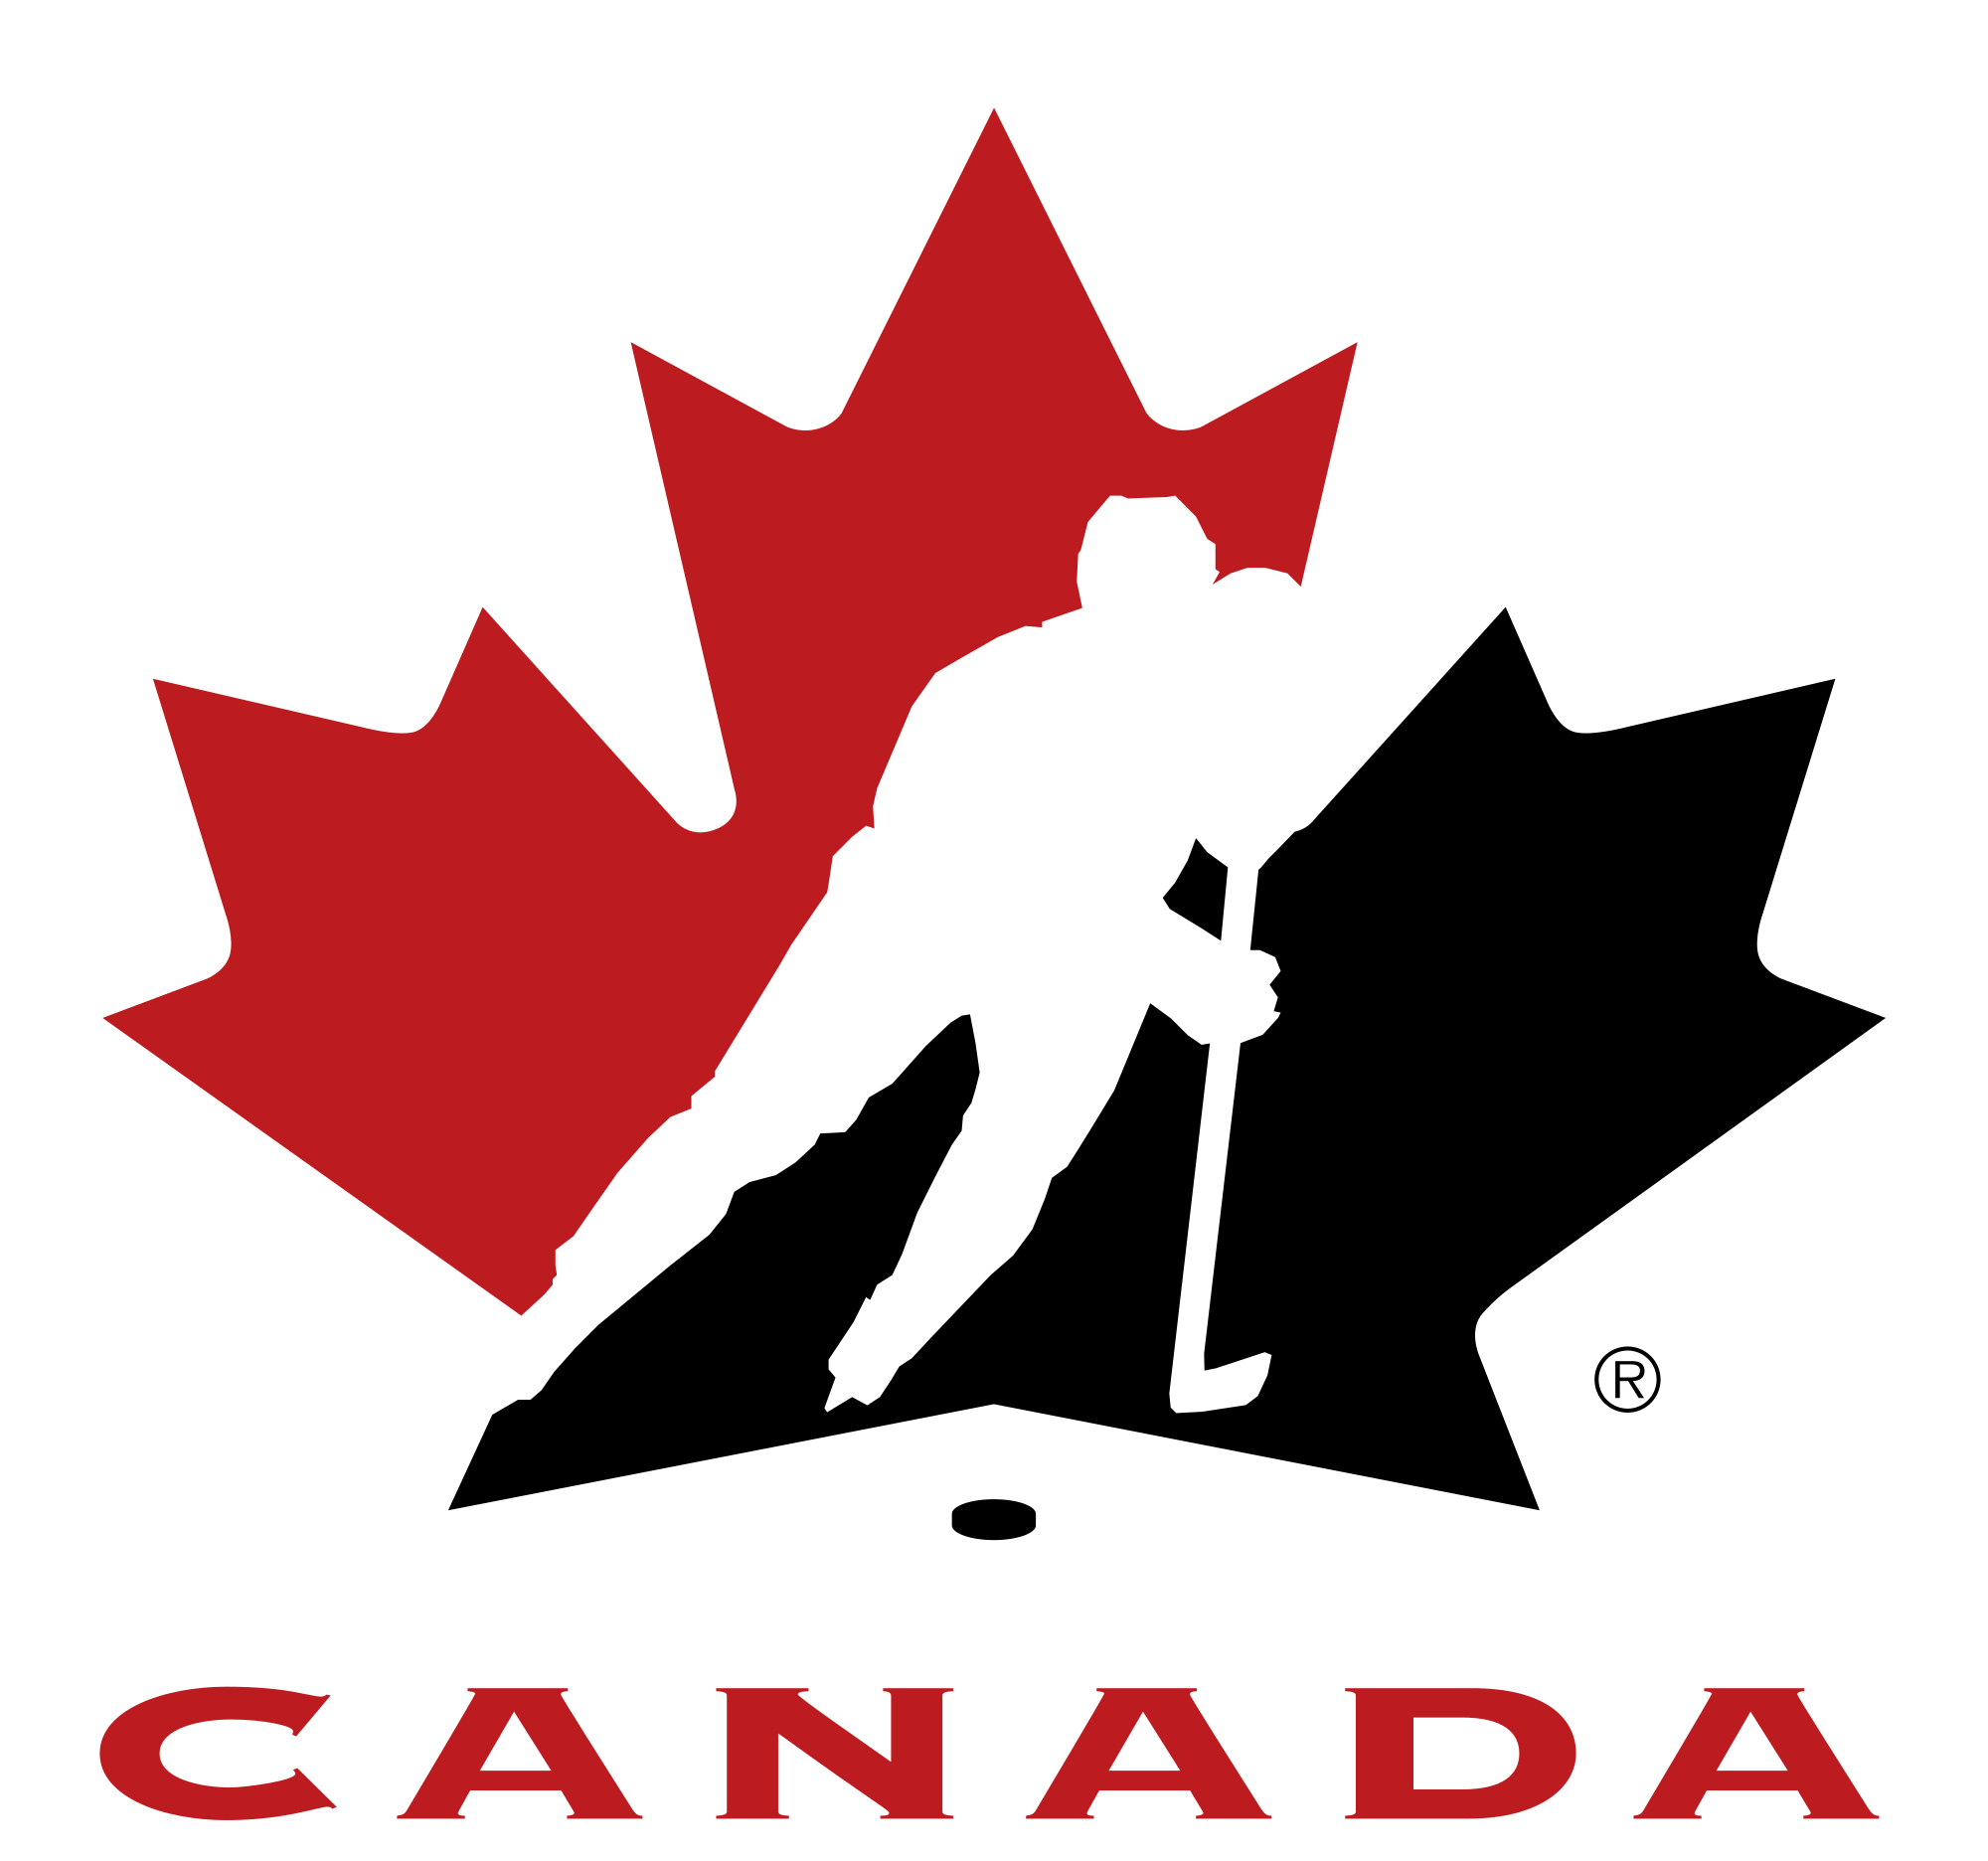 Hockey Logos Team Canada Hockey Logo Hockey Logos Pinterest Canada Hockey